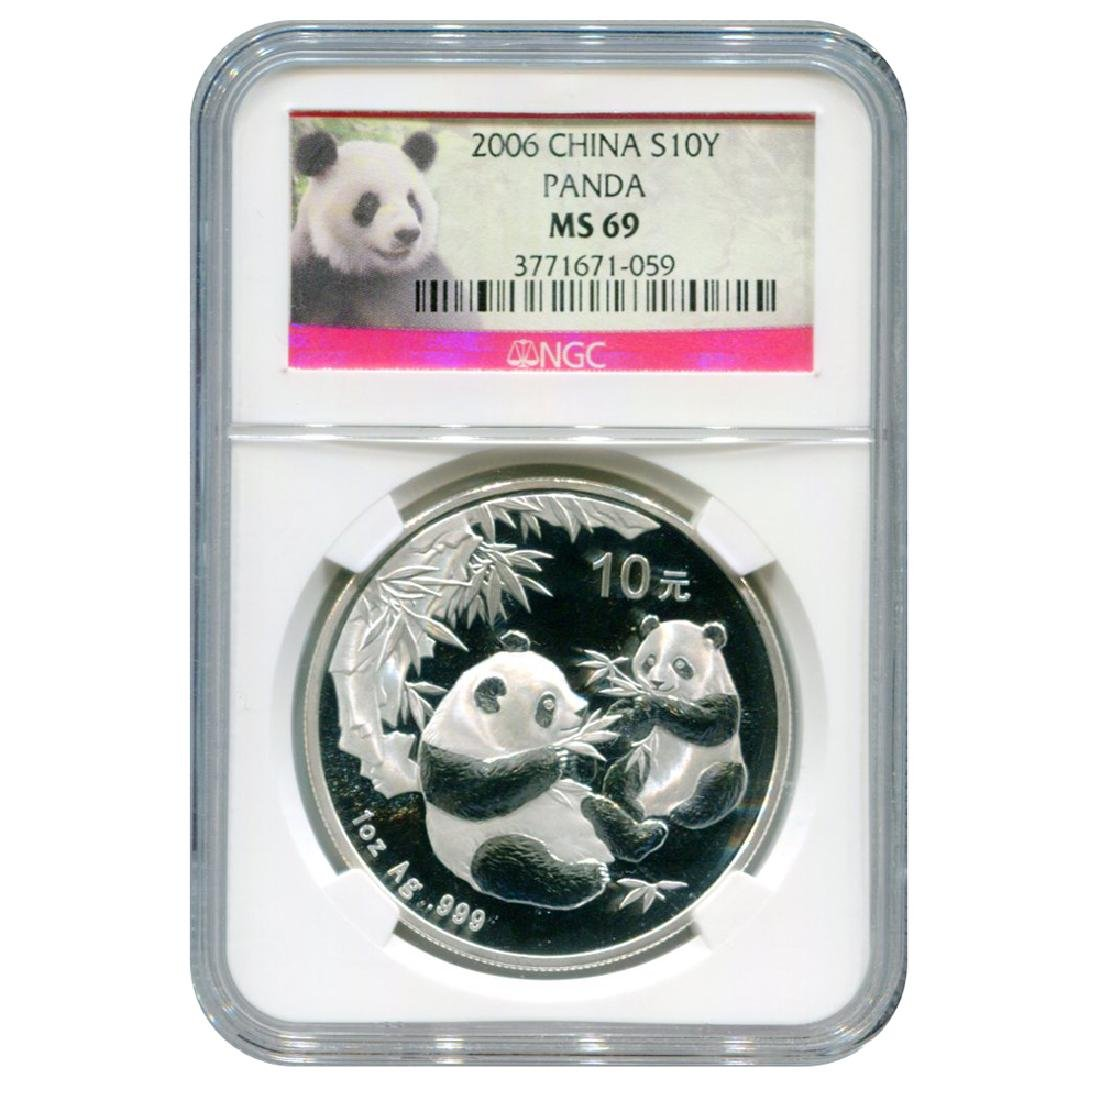 Certified Chinese Silver Panda One Ounce 2006 MS69 Pand